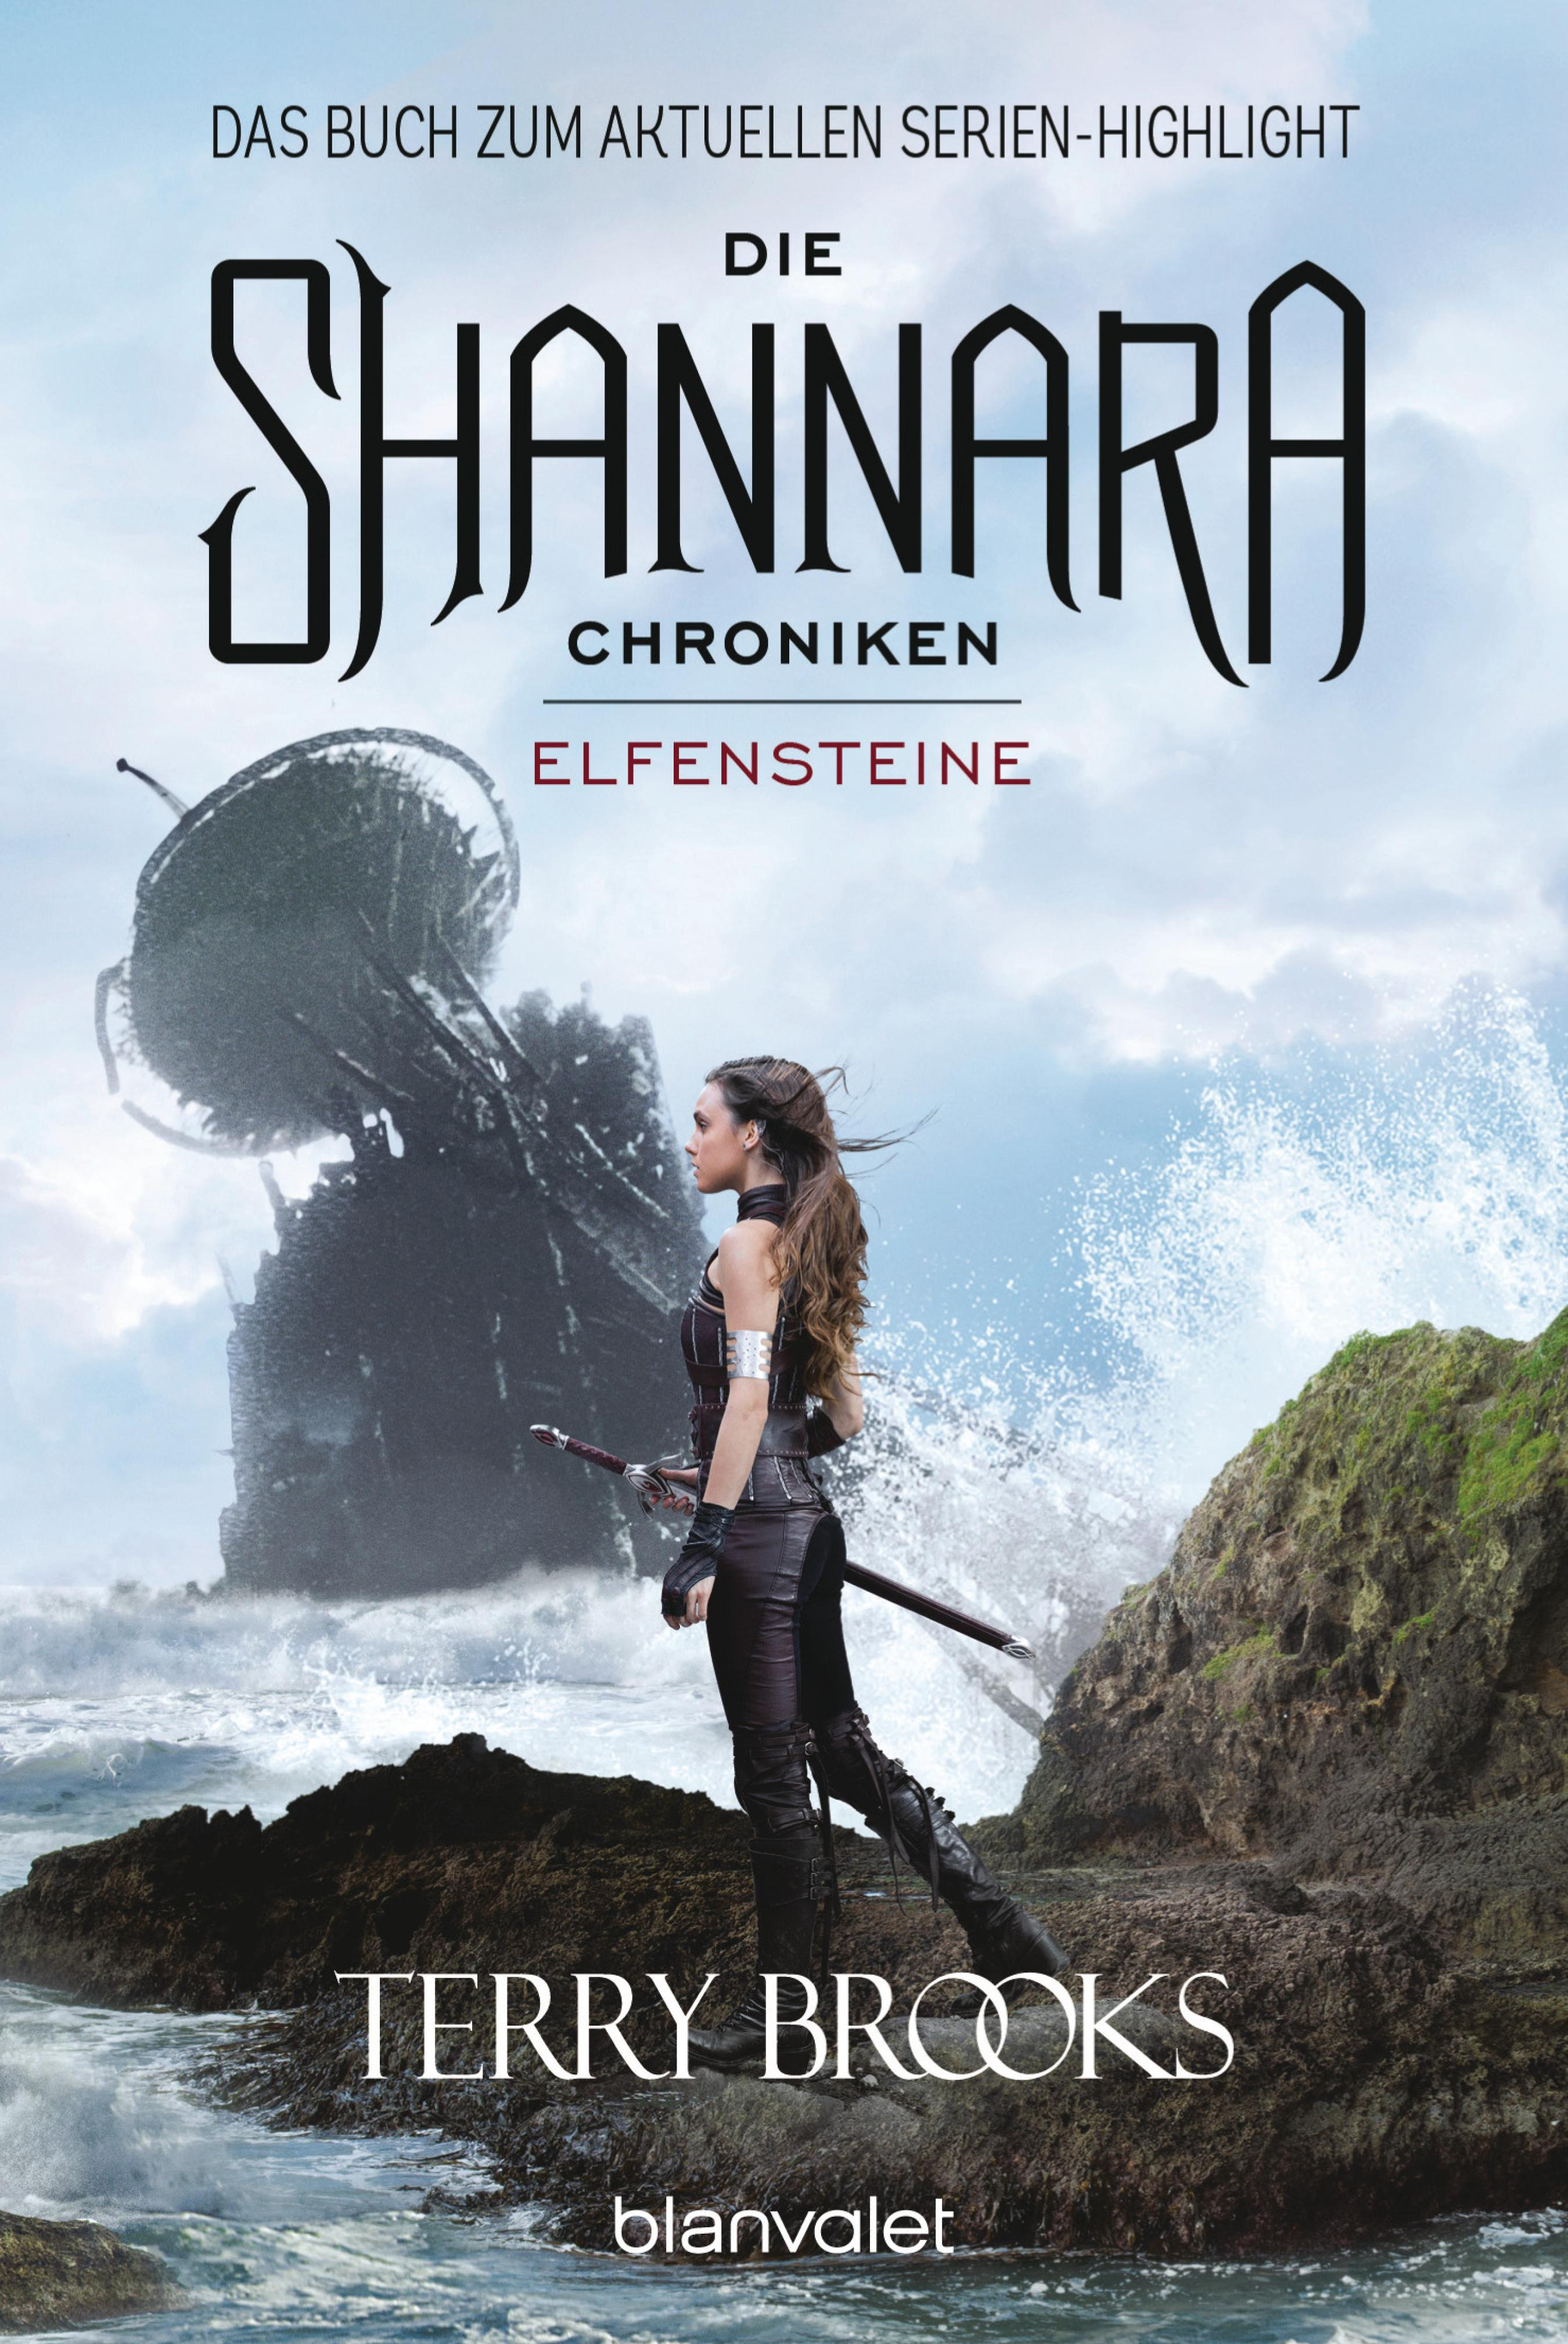 DIE SHANNARA-CHRONIKEN - ELFENSTEINE DIE SHANNARA-CHRONIKEN